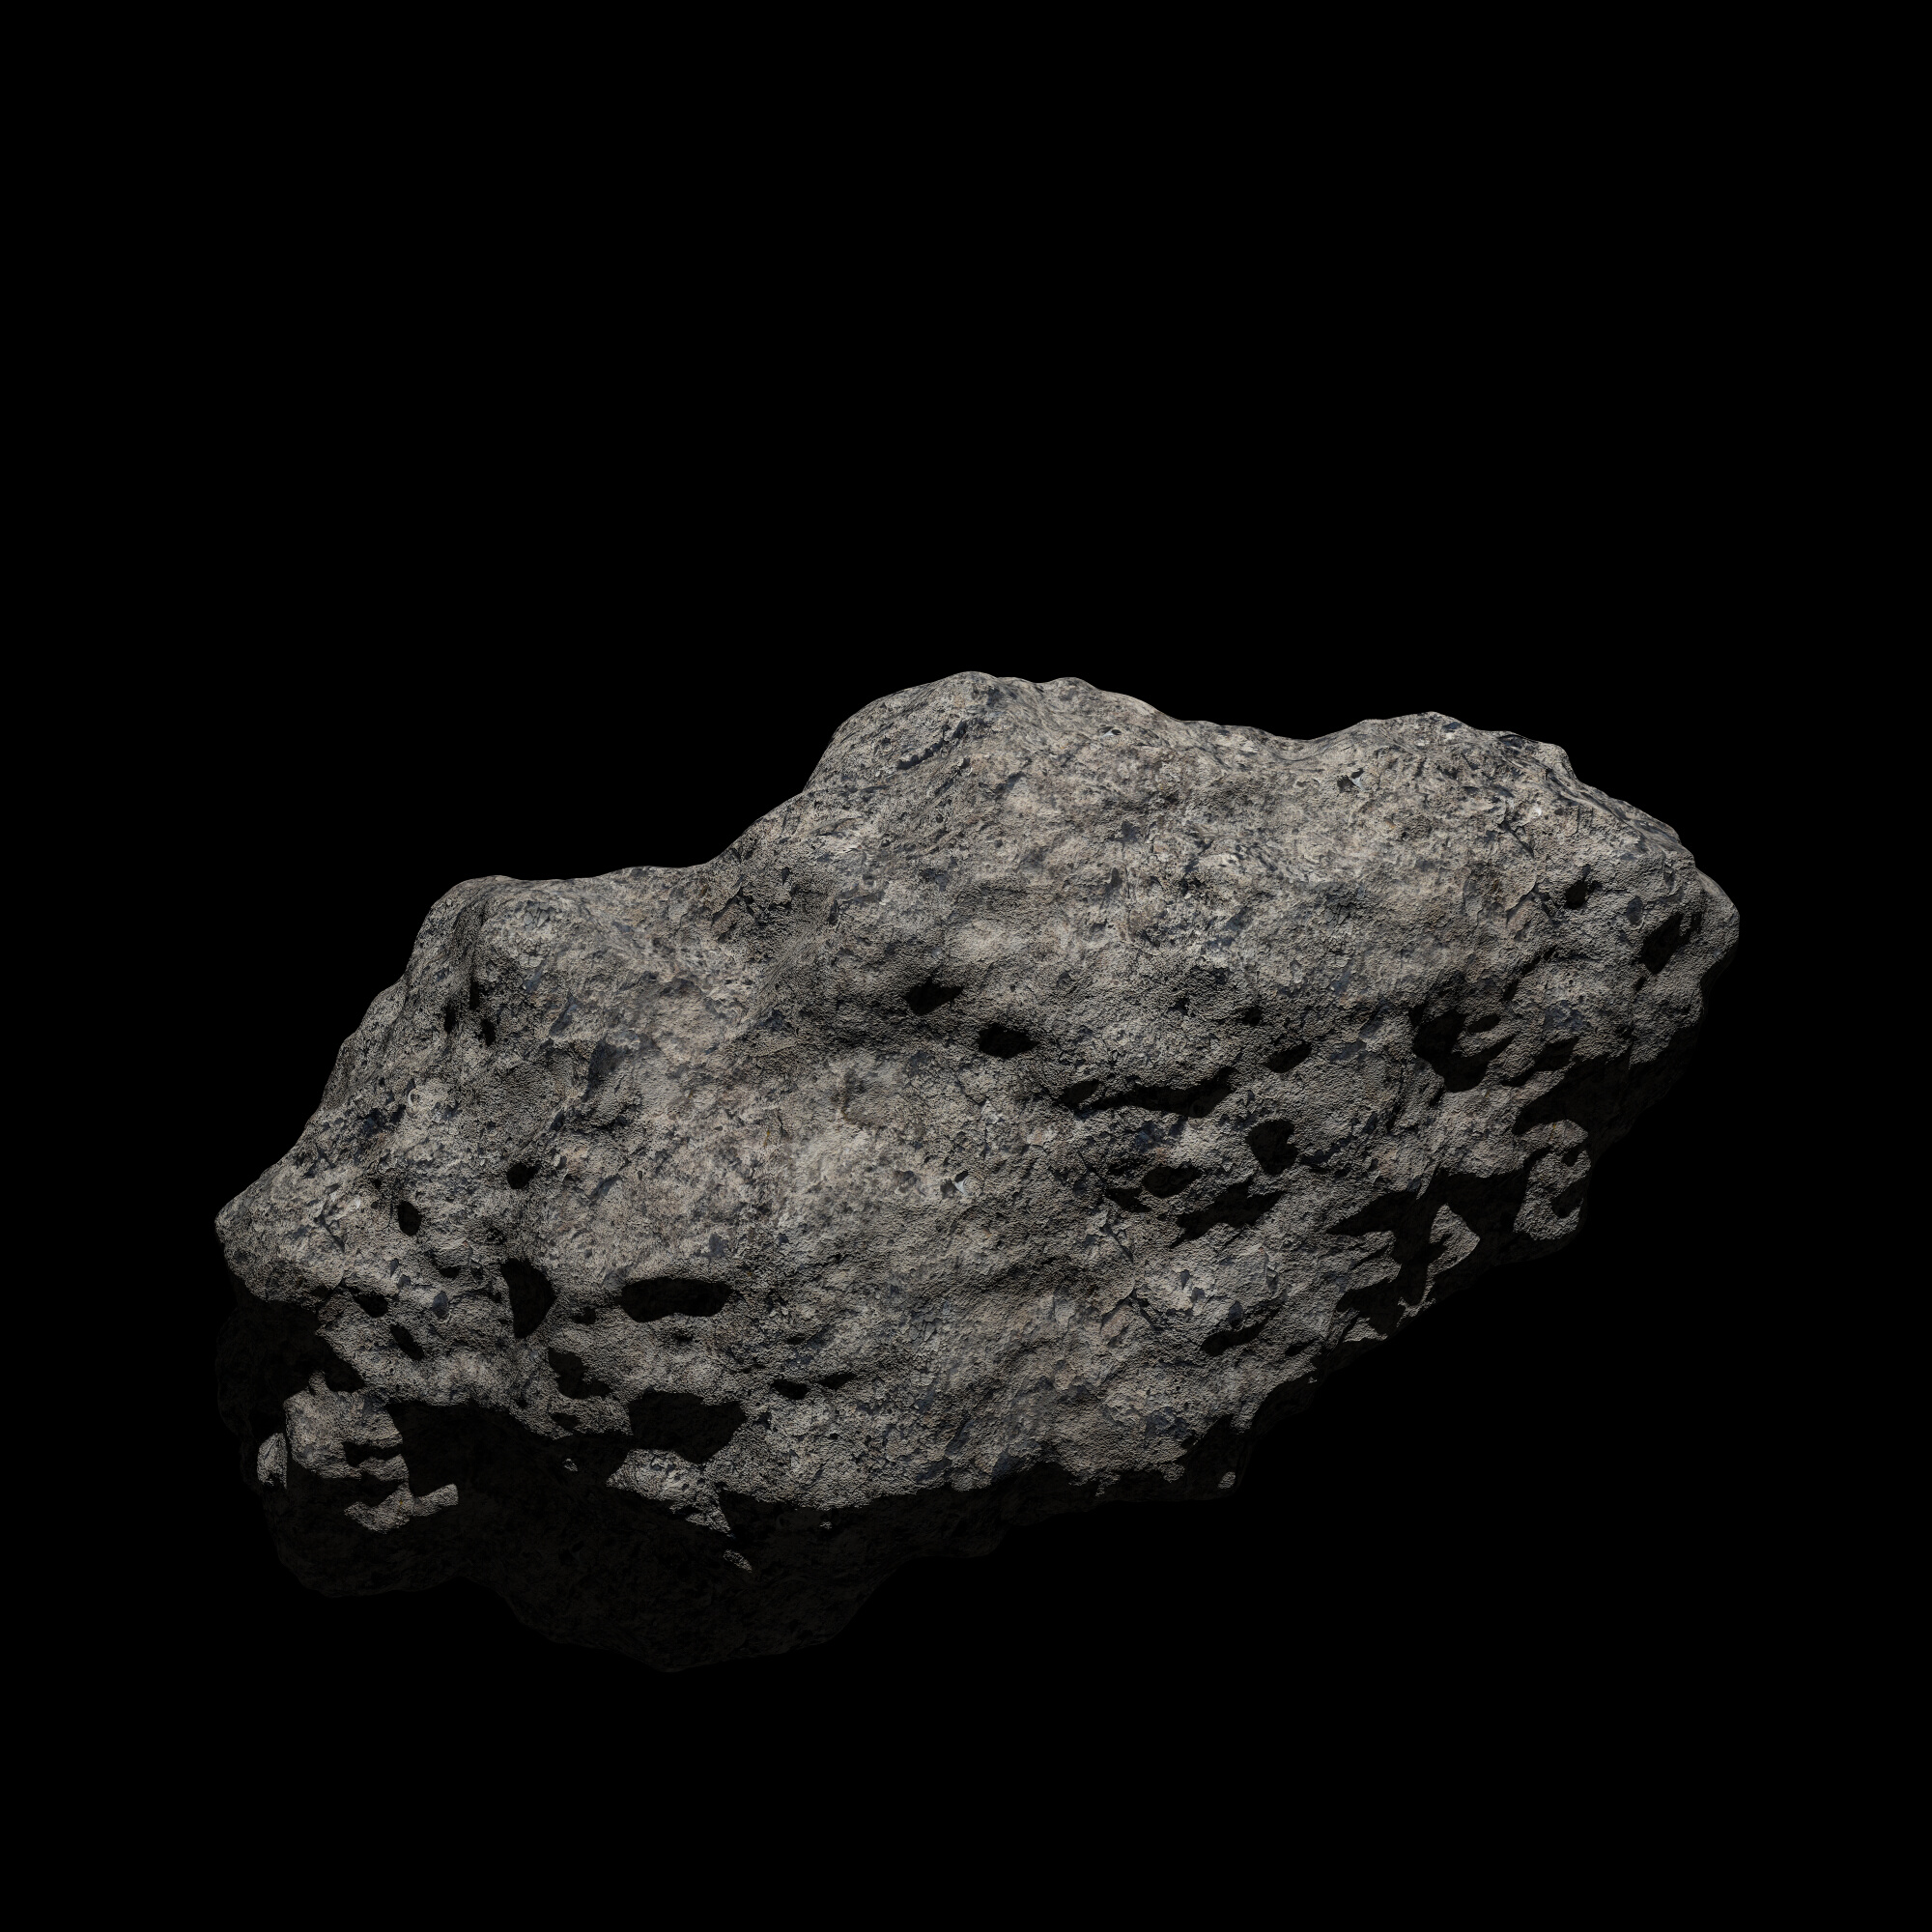 Fantasy Asteroid 2 3d model  267190